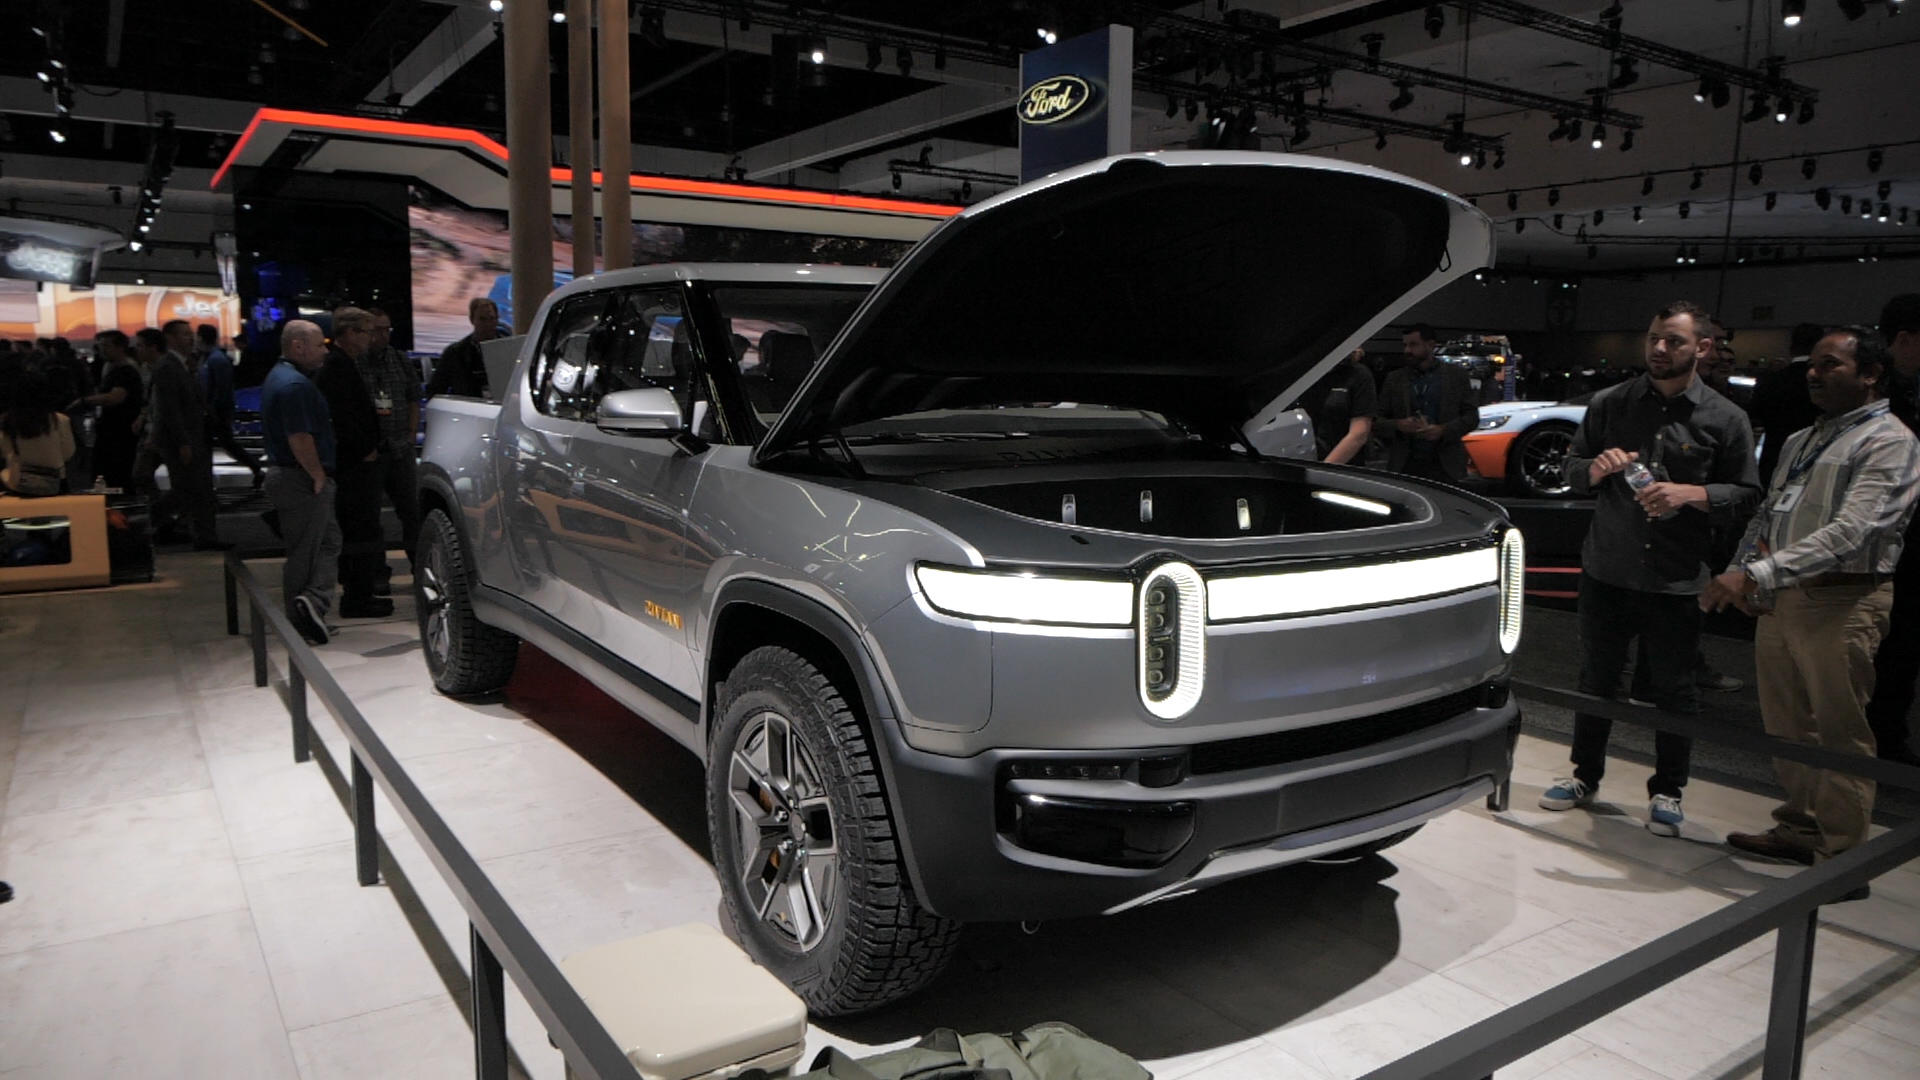 Video: The R1T concept from Rivian is the electric truck we've been waiting for